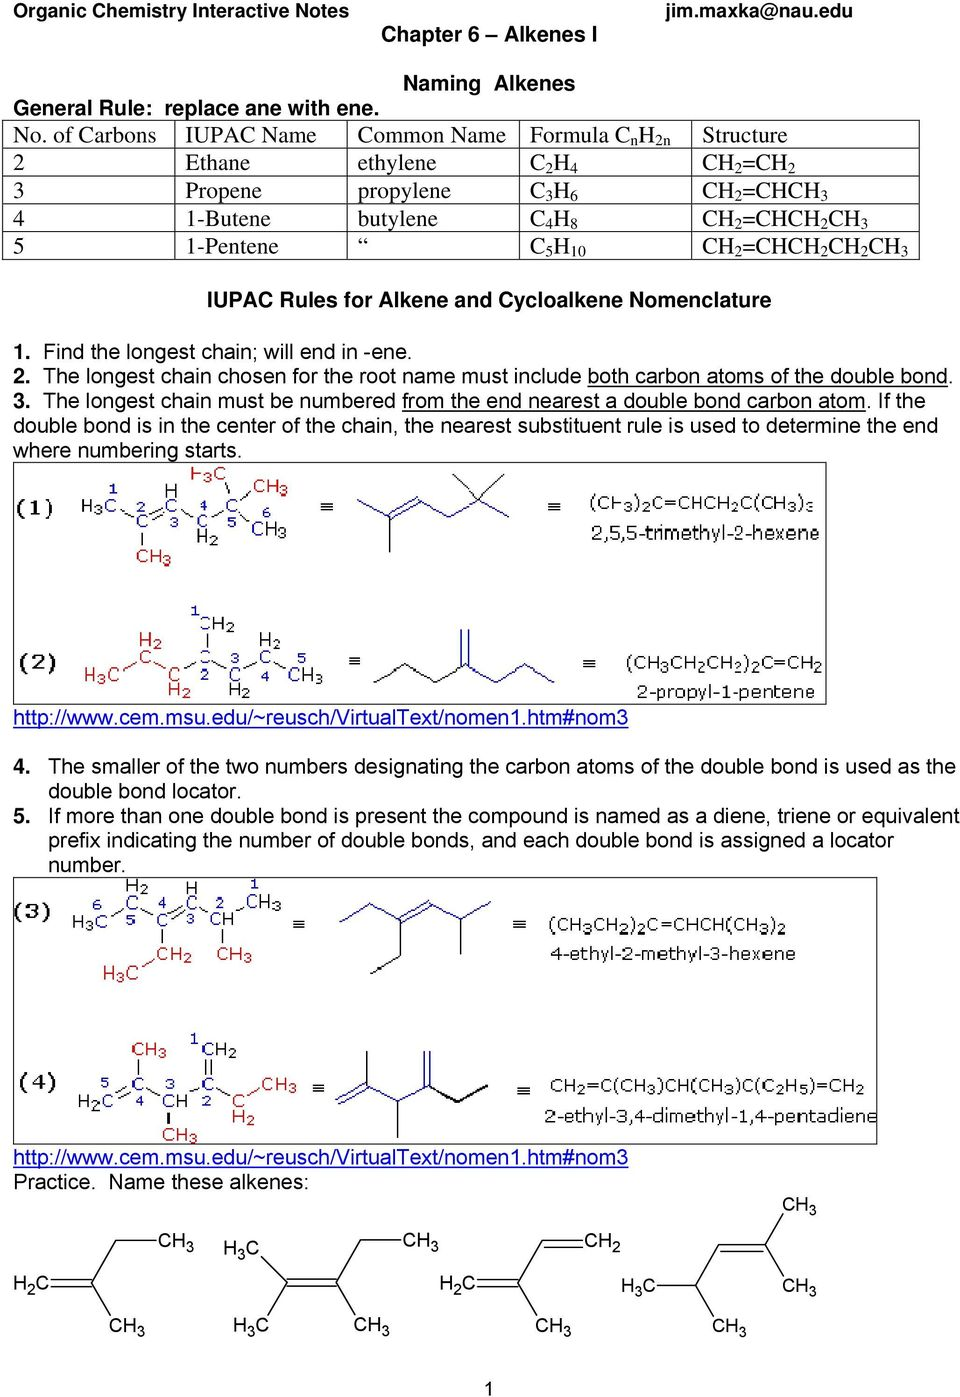 Chapter 6 Alkenes I  IUPAC Rules for Alkene and Cycloalkene